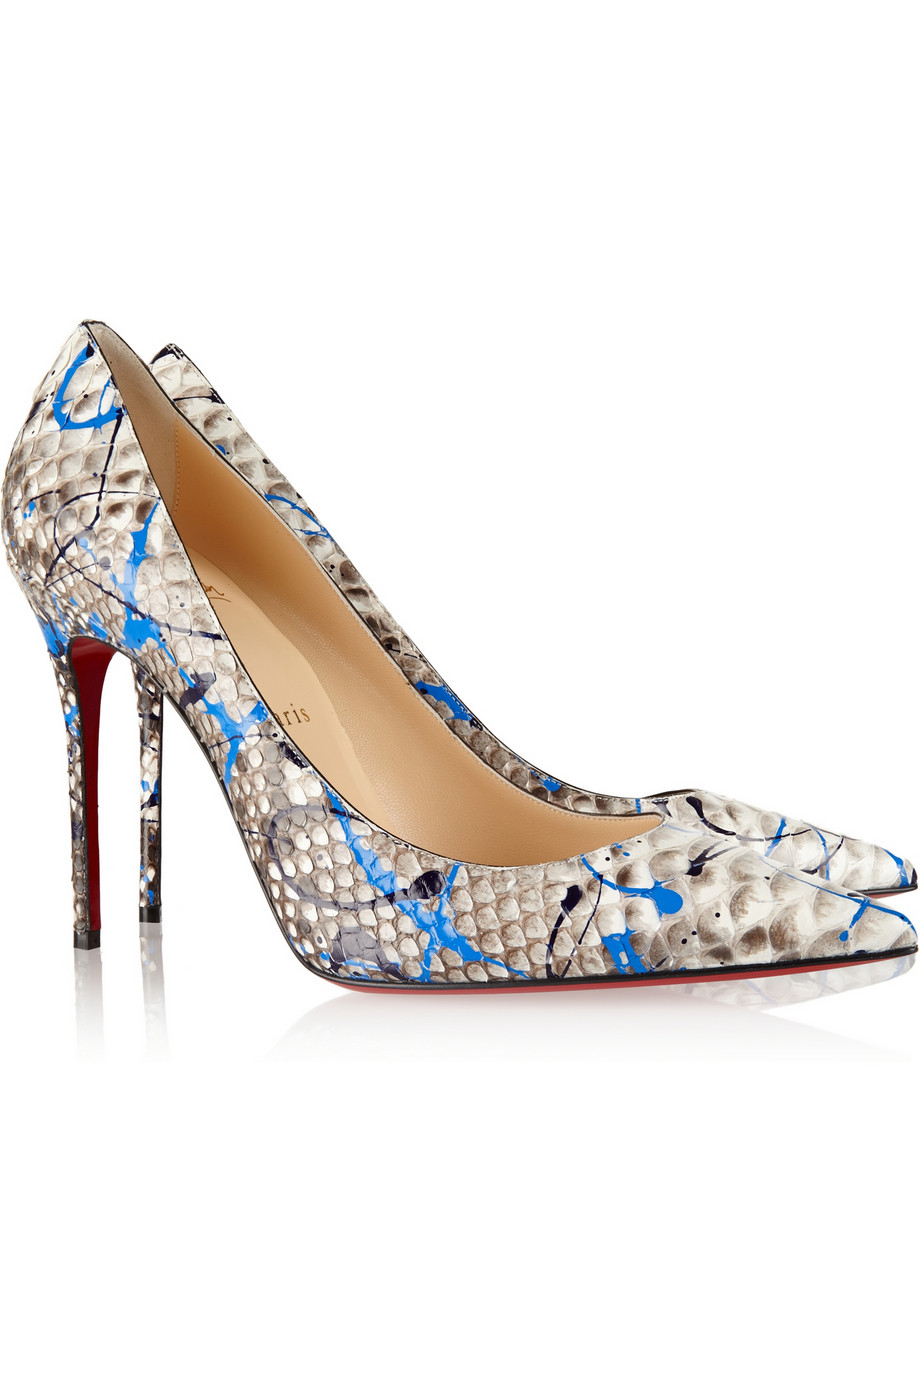 lyst christian louboutin d collet 100 painted python pumps in blue rh lyst com